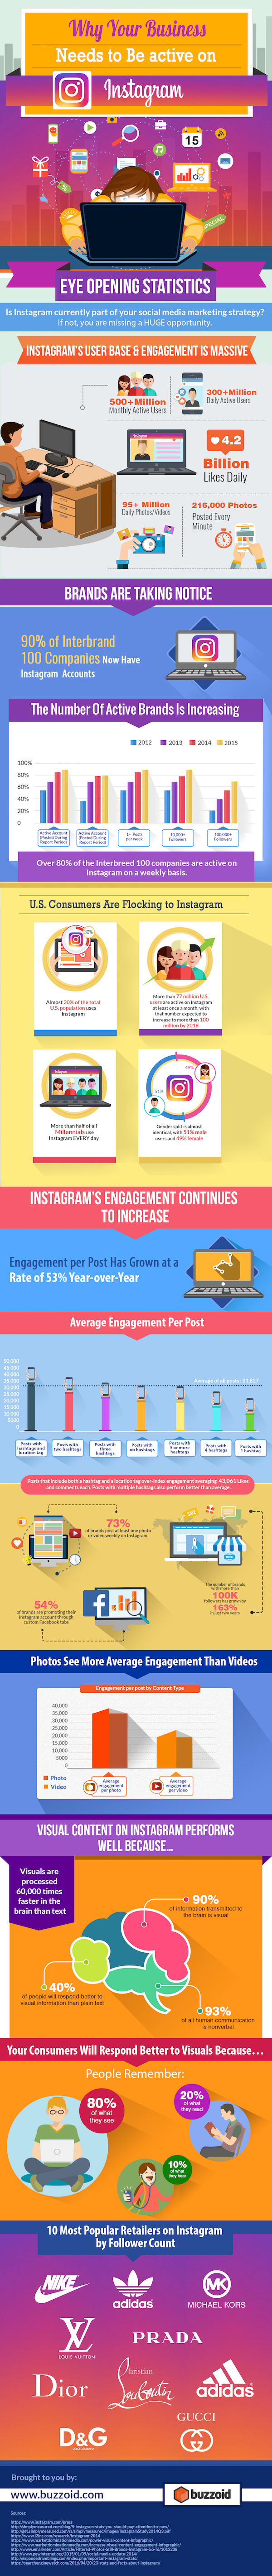 Instagram Marketing- It's Time Your Business Takes Action (Infographic)